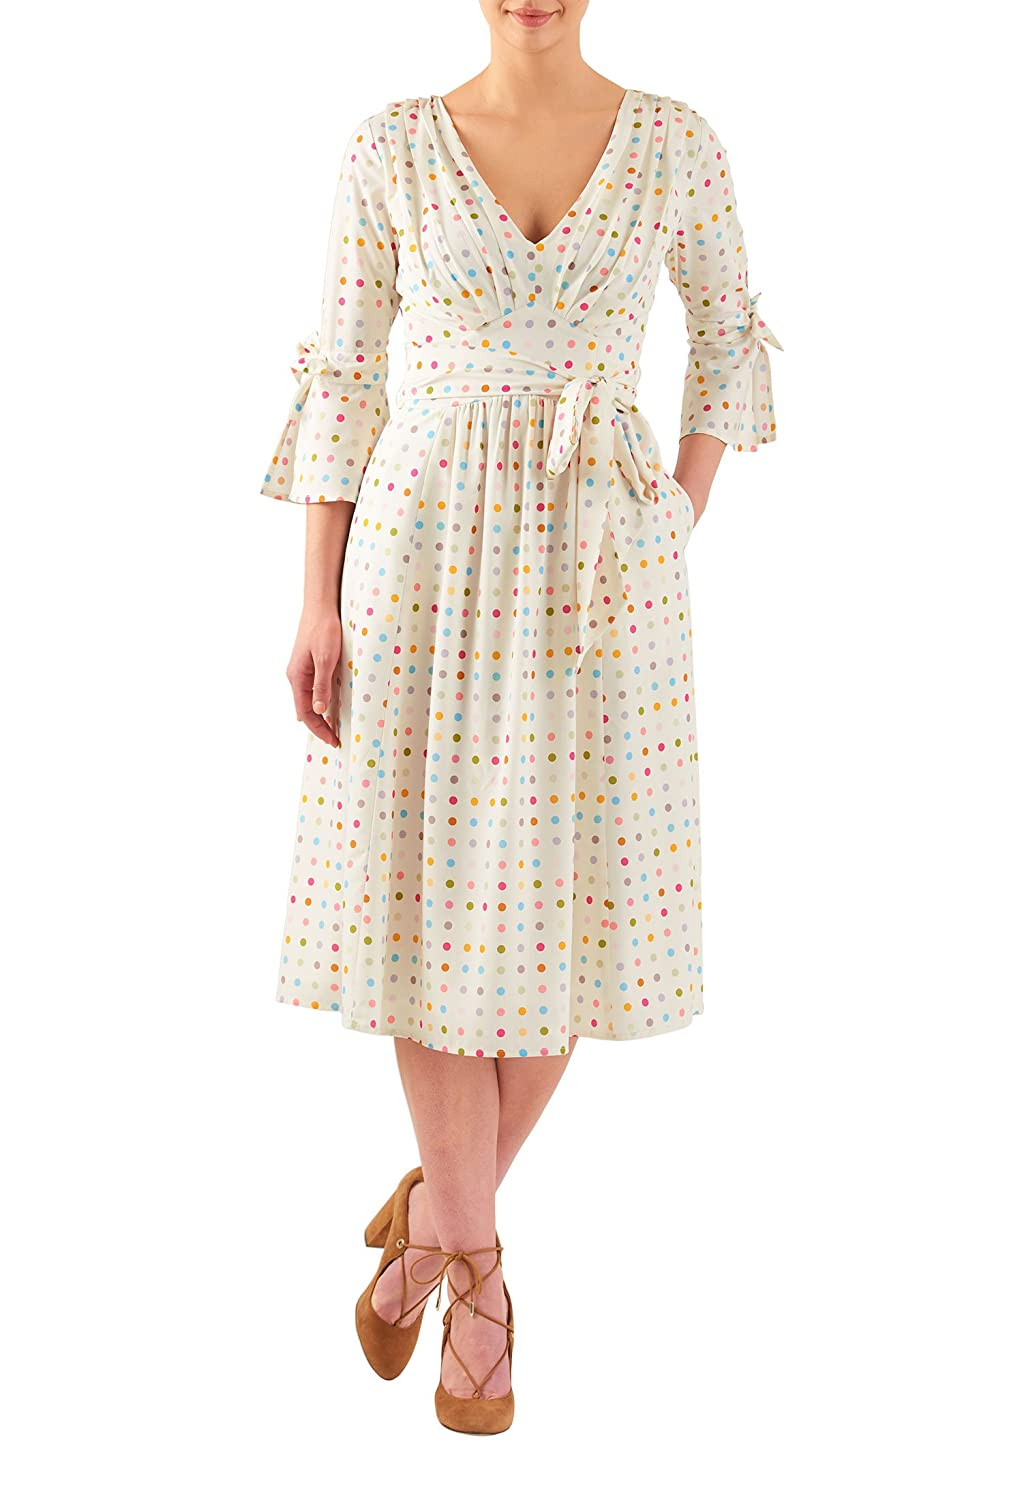 1930s Art Deco Plus Size Dresses | Tea Dresses, Party Dresses Pleated polka dot print crepe midi dress $64.95 AT vintagedancer.com